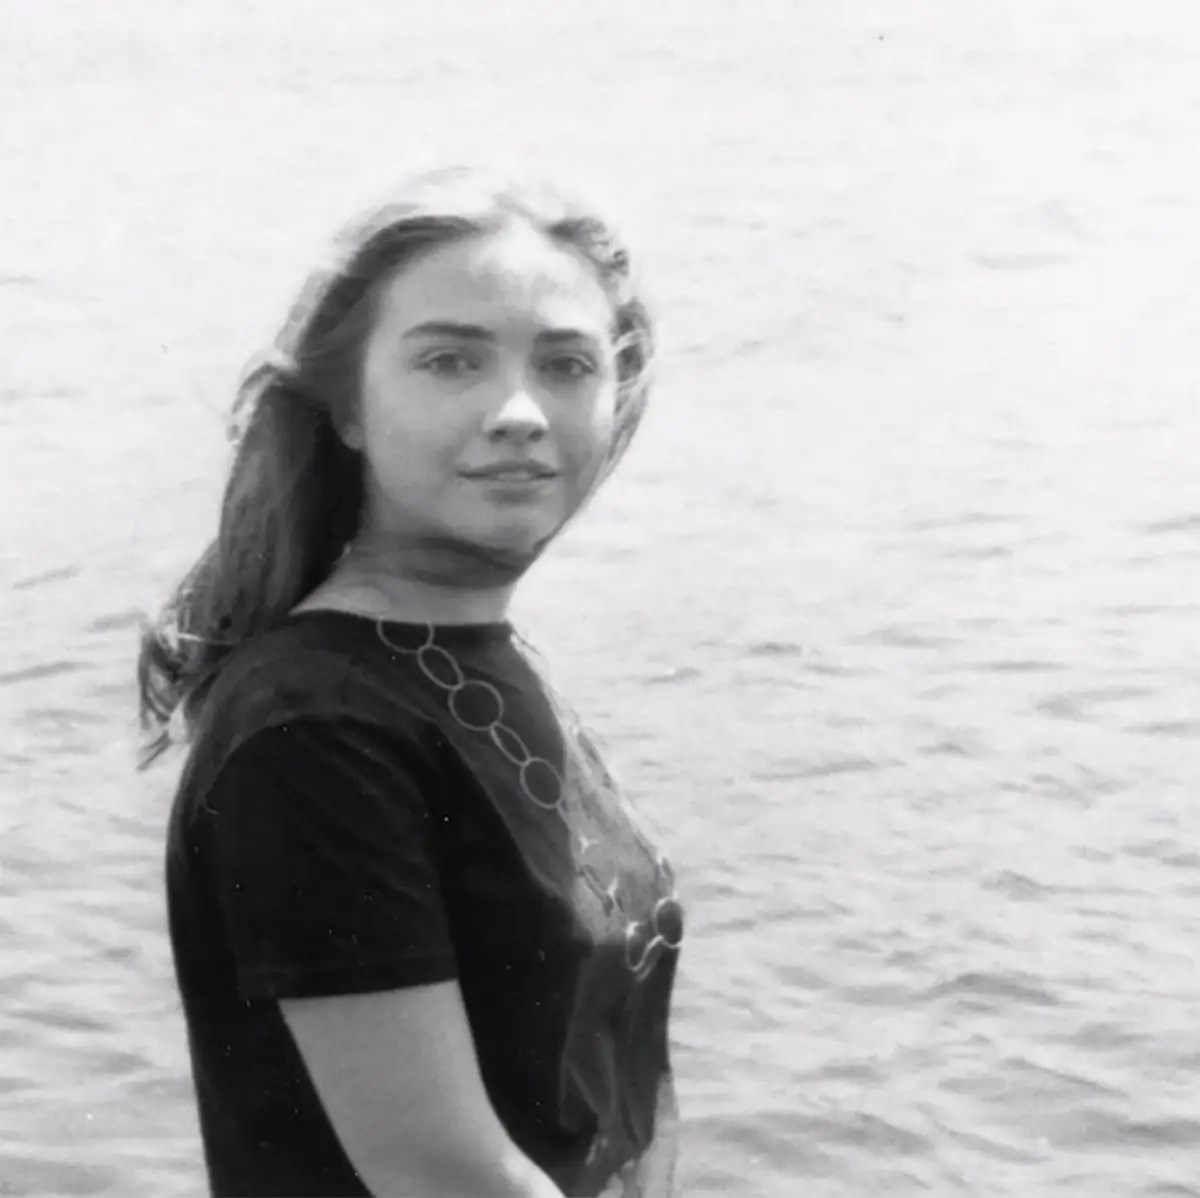 While a student at Wellesley College, Clinton began to drift from her father's conservative values and lean to the left, causing them to fall out, according to some of Clinton's biographers. She majored in political science.